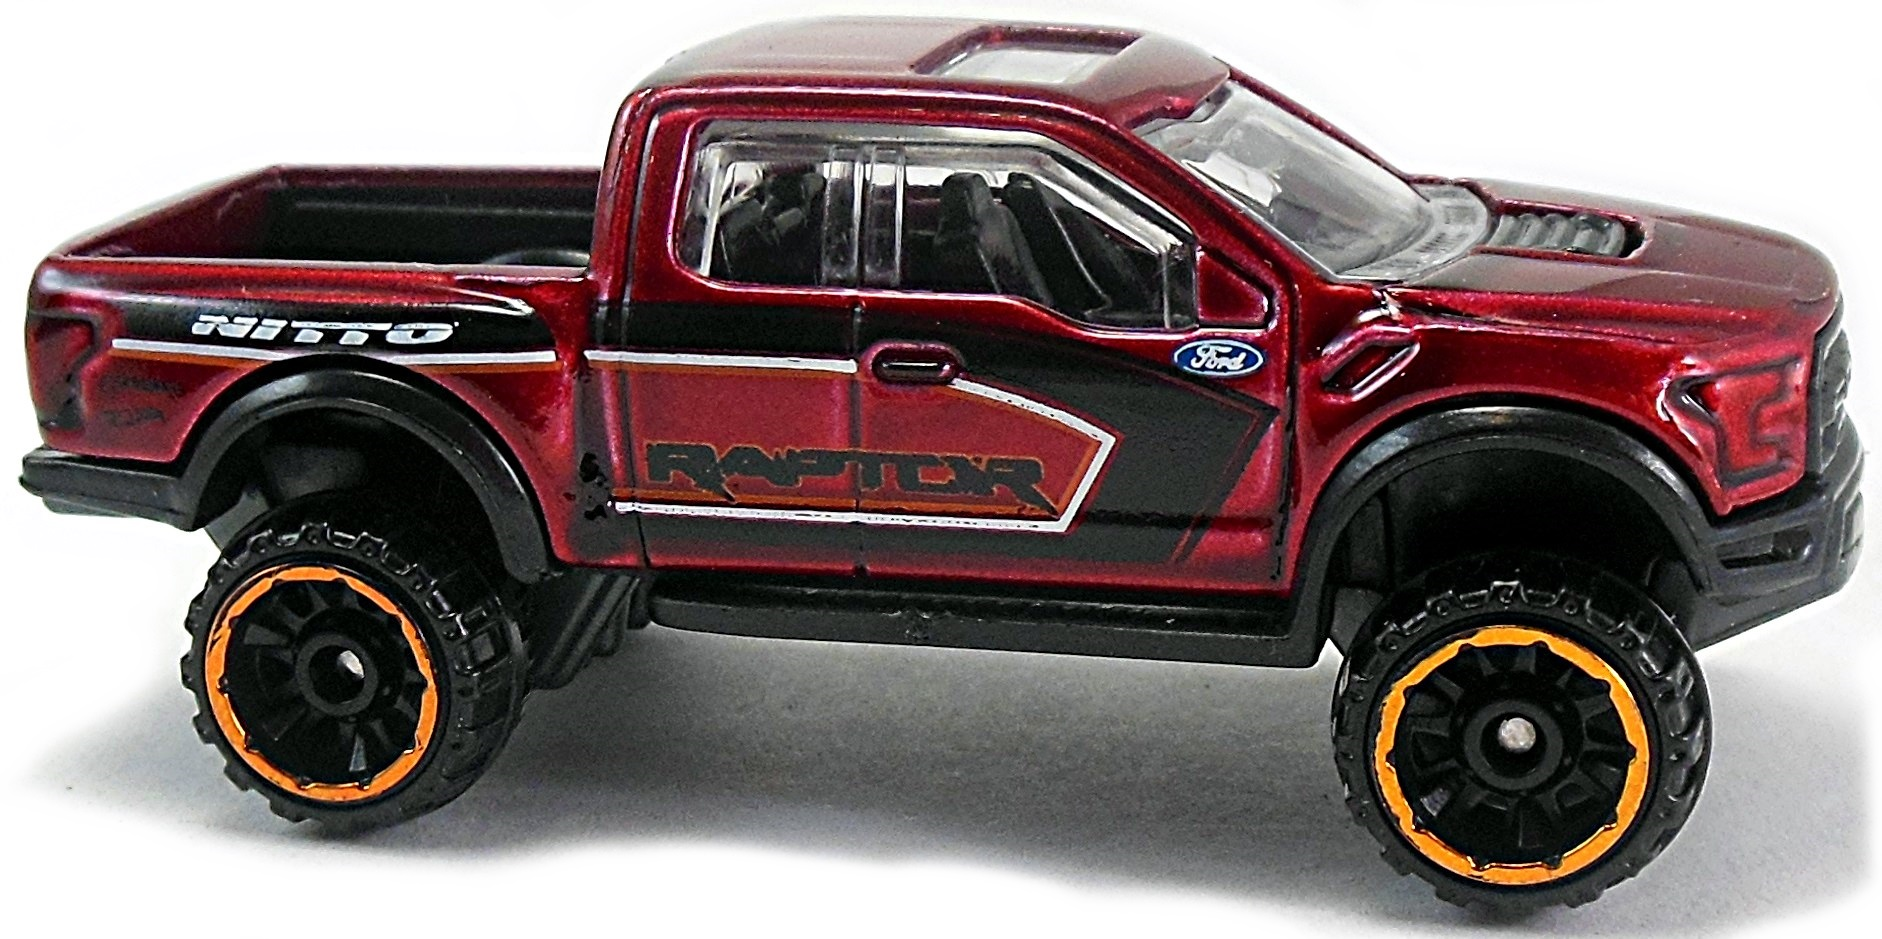 17 ford f 150 raptor 74mm 2016 hot wheels newsletter c mf red black base and int clear windows black and white stripes raptor and nitro on sides or6or mal hw hot trucks 10 2017 1 2 voltagebd Gallery